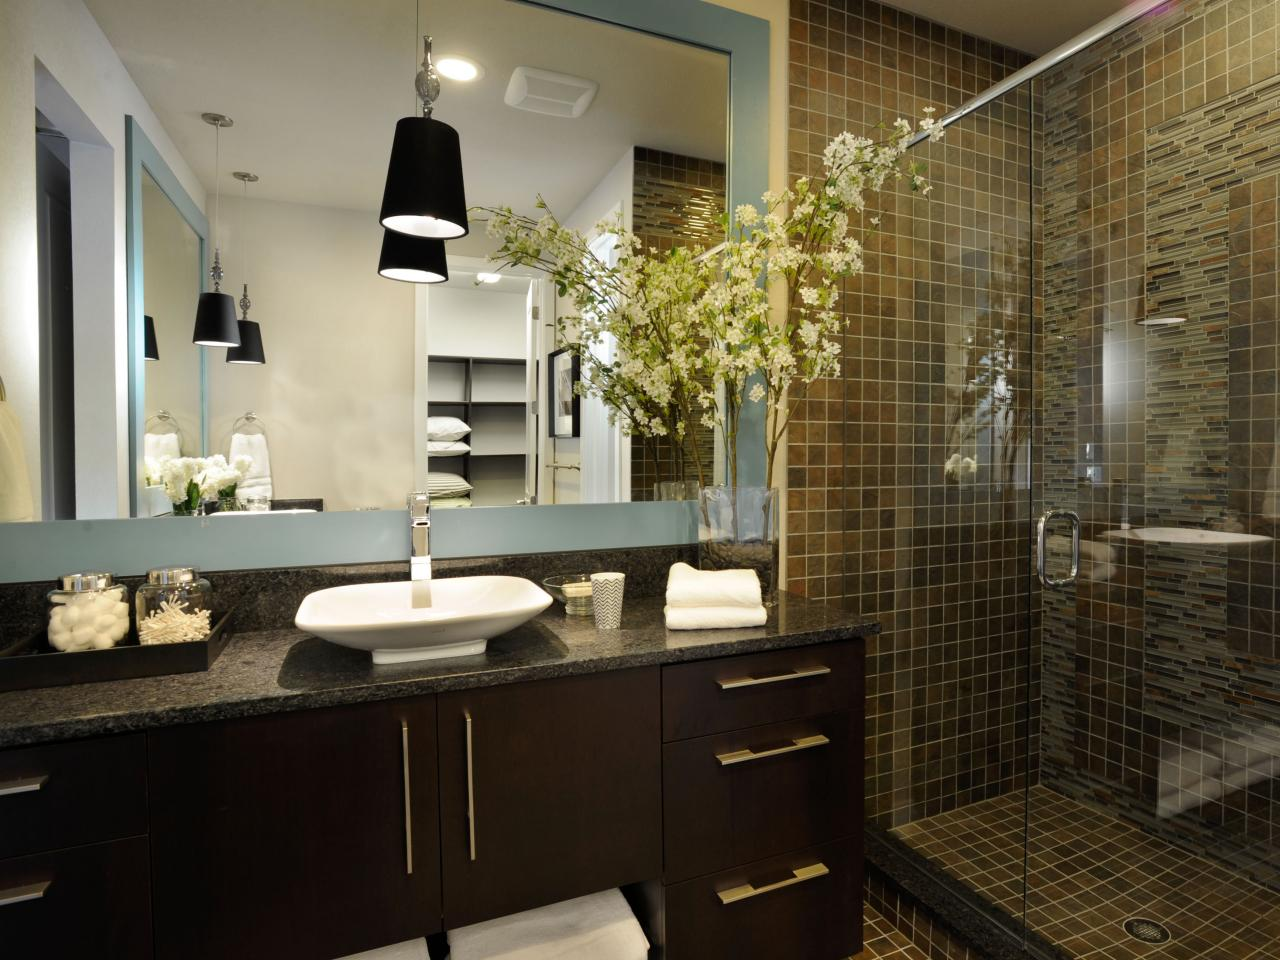 03-gh2011_master-bathroom-sink-mirror-shower_s4x3-jpg-rend-hgtvcom-1280-960